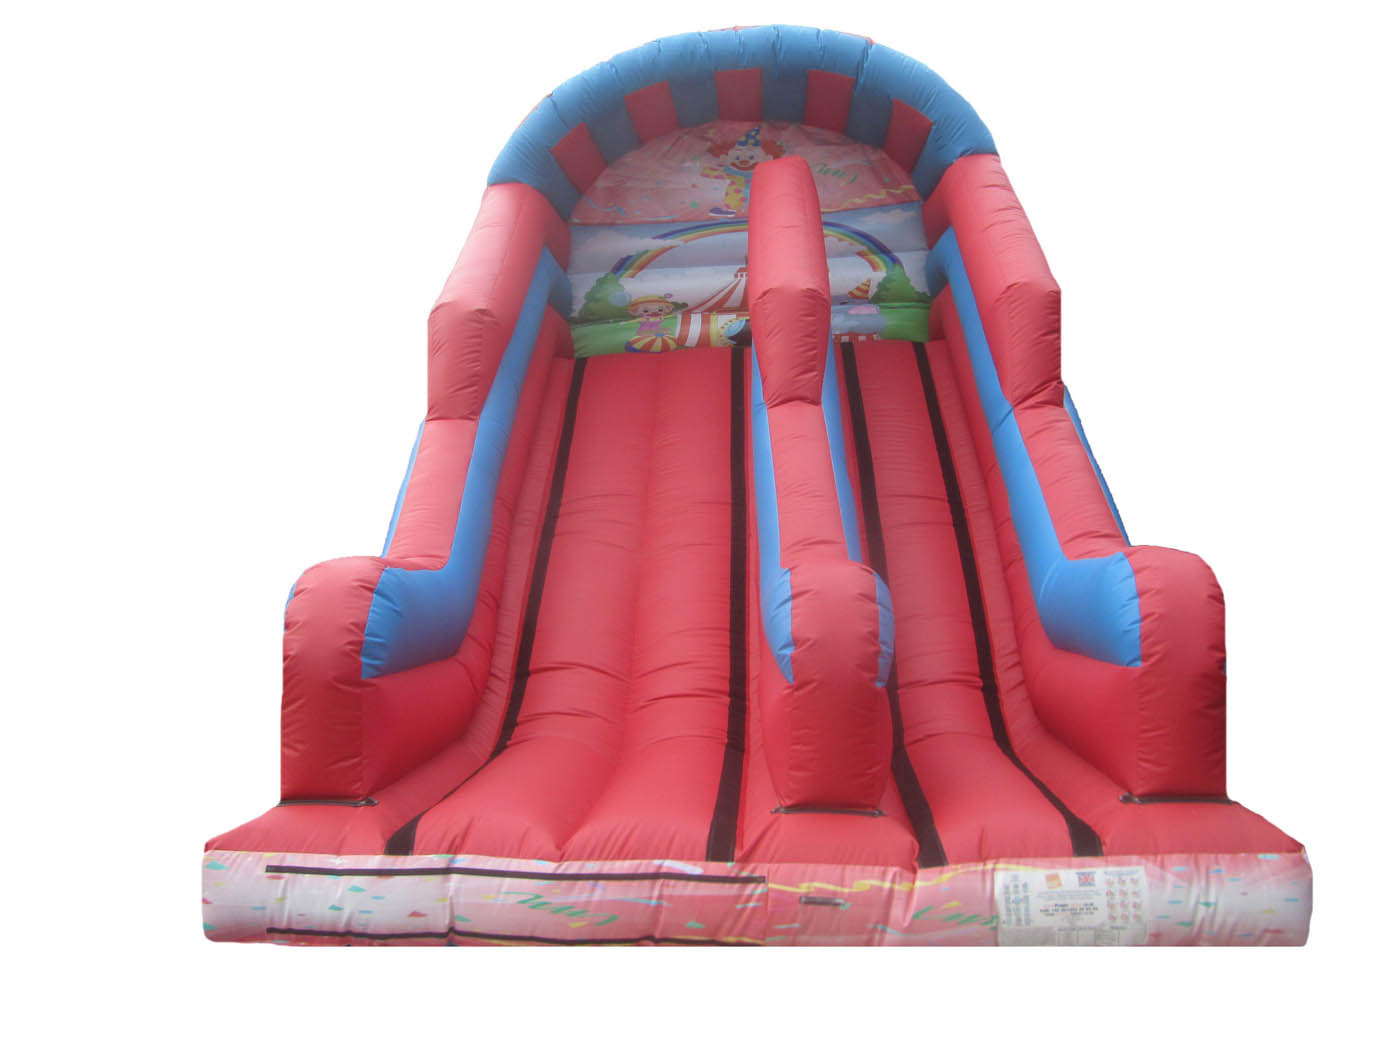 10ft-platform-clown-printed-inflatable-slide-compressor